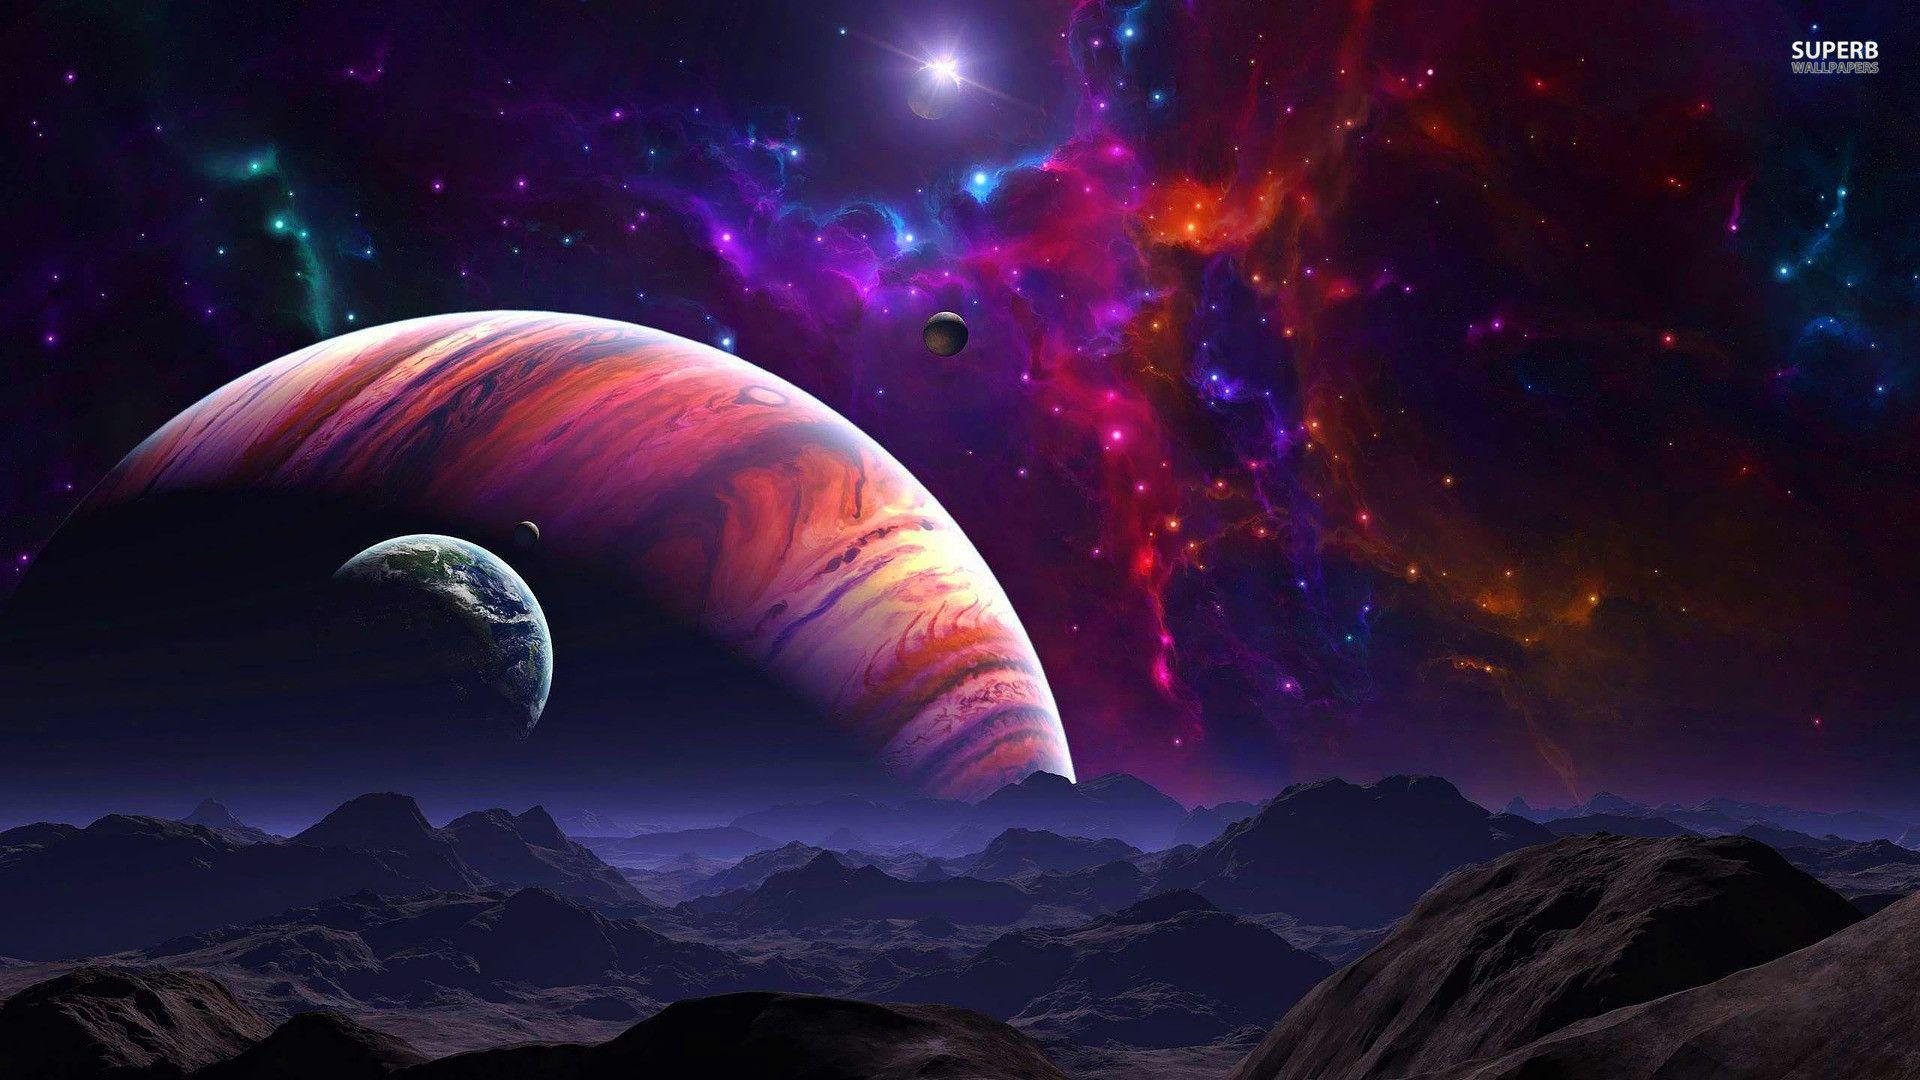 10 Best Space Hd Wallpapers 1080p Widescreen Full Hd 1080p: Space Wallpapers 1920x1080